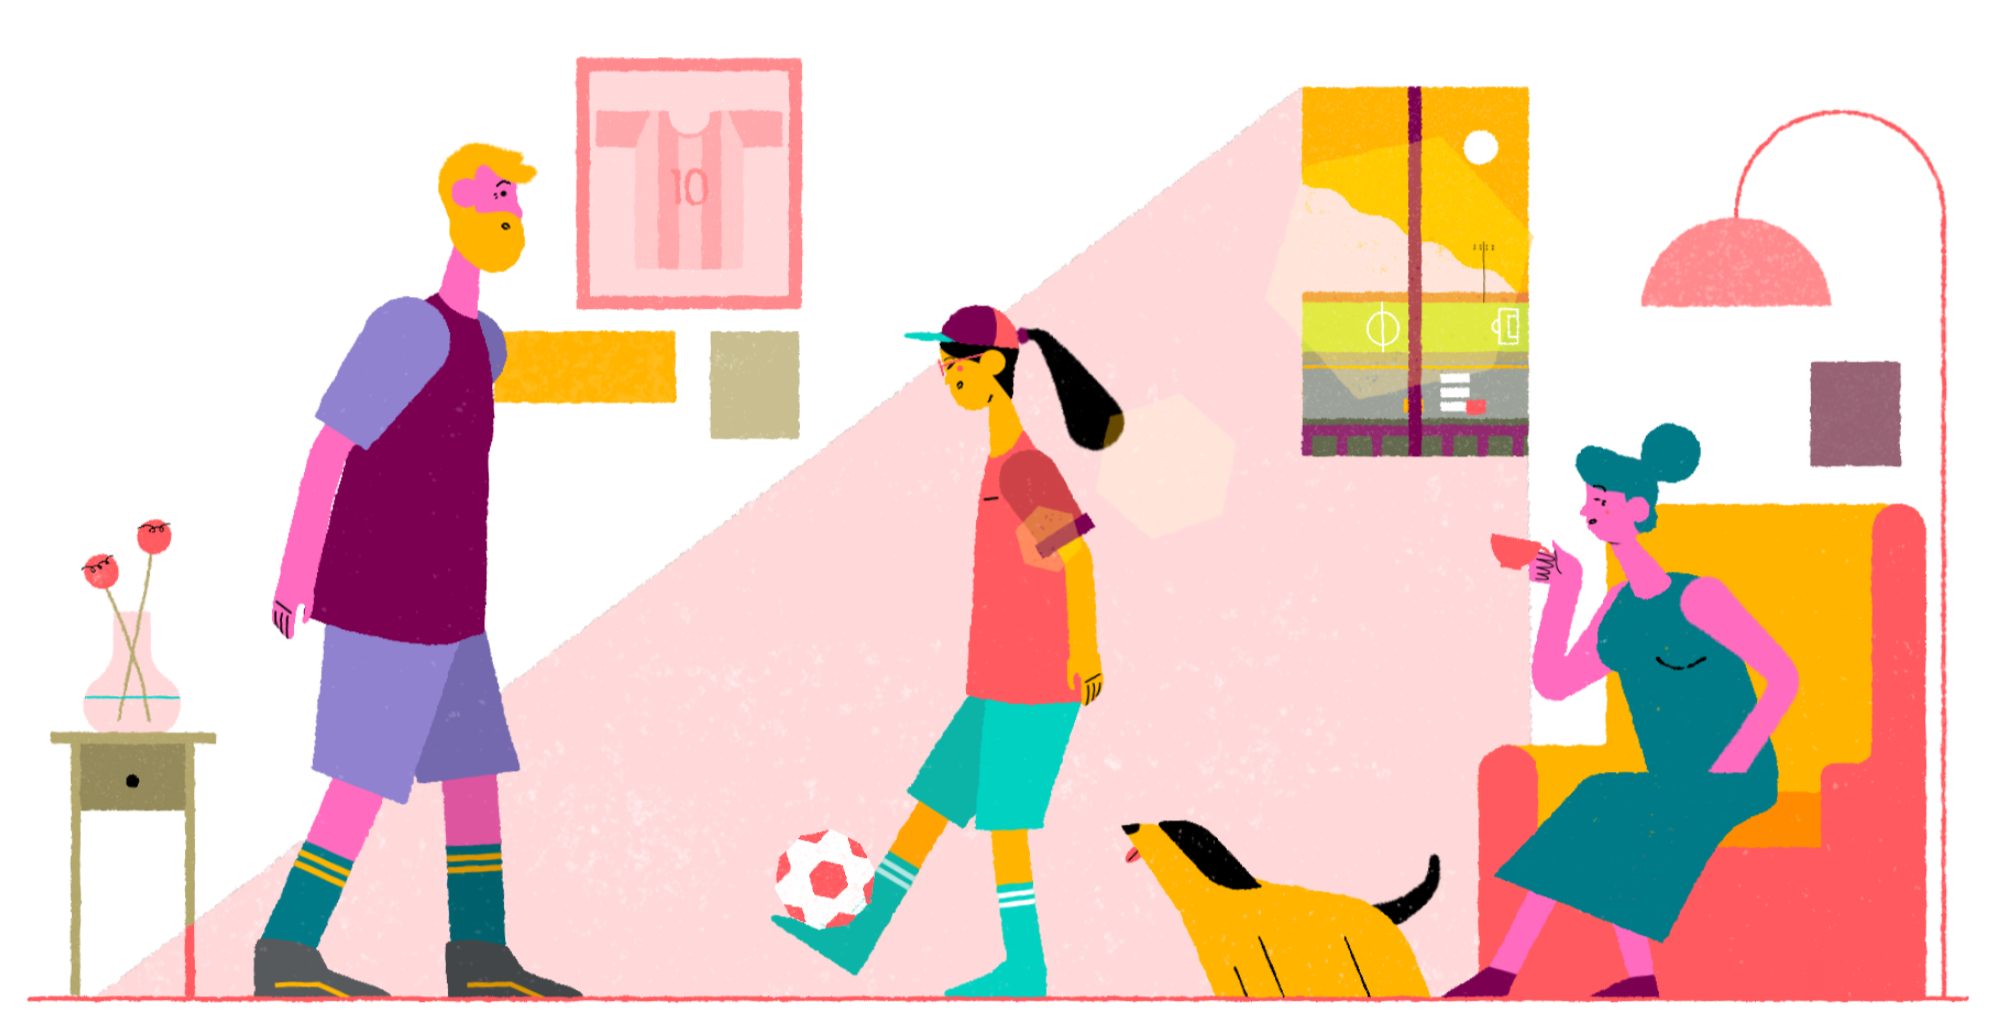 An illustration featuring the Airbnb host and guest juggling a football inside while a dog watches and the host's wife sips on some tea.